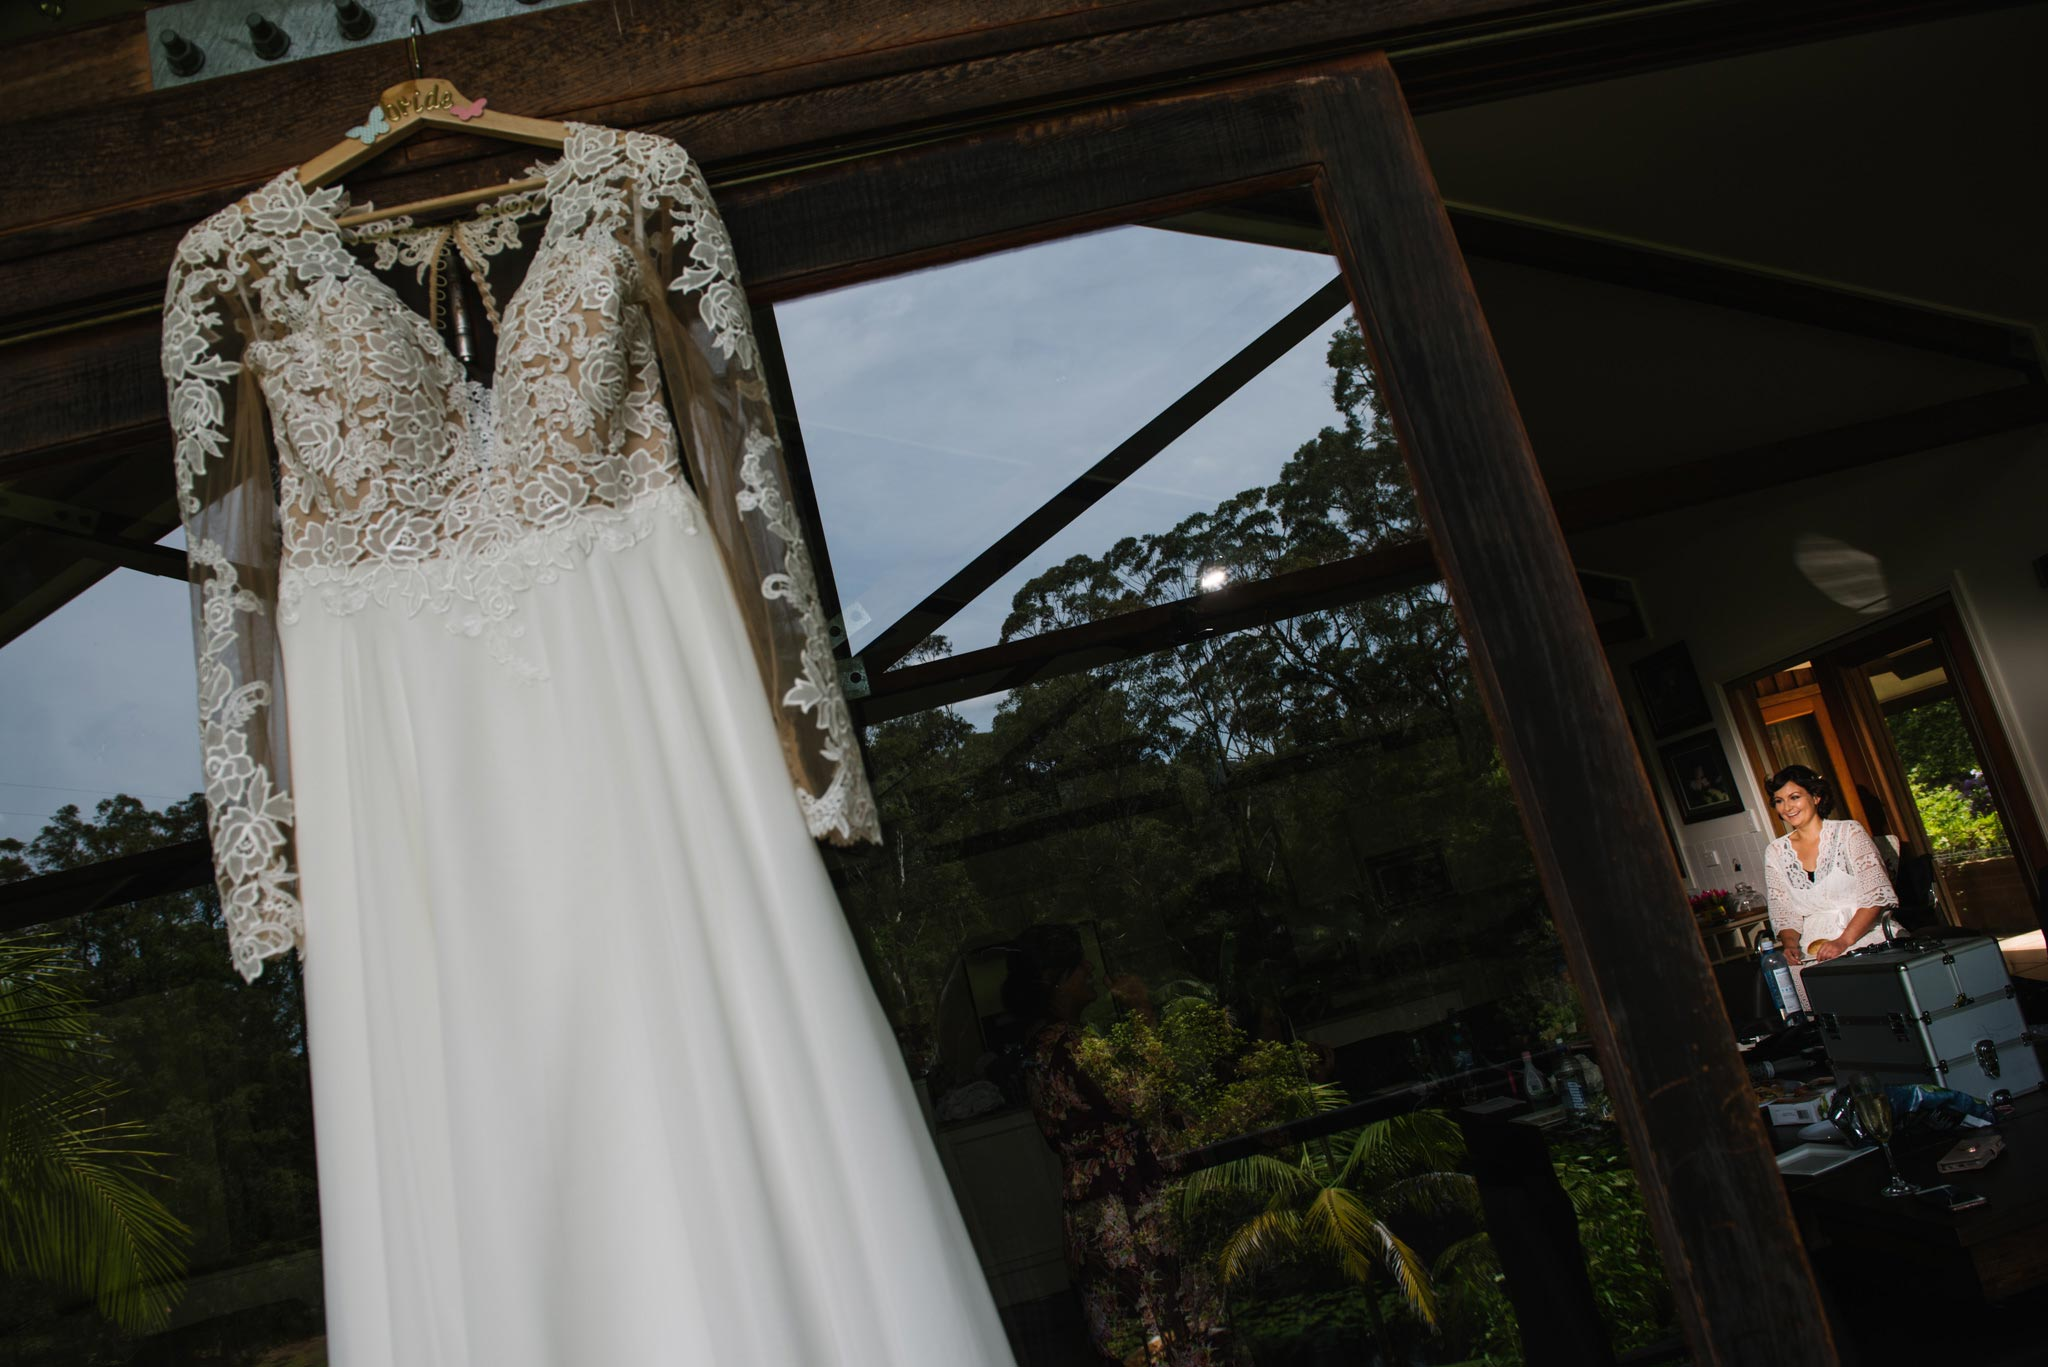 Vintage dress hanging with bride getting ready in the background